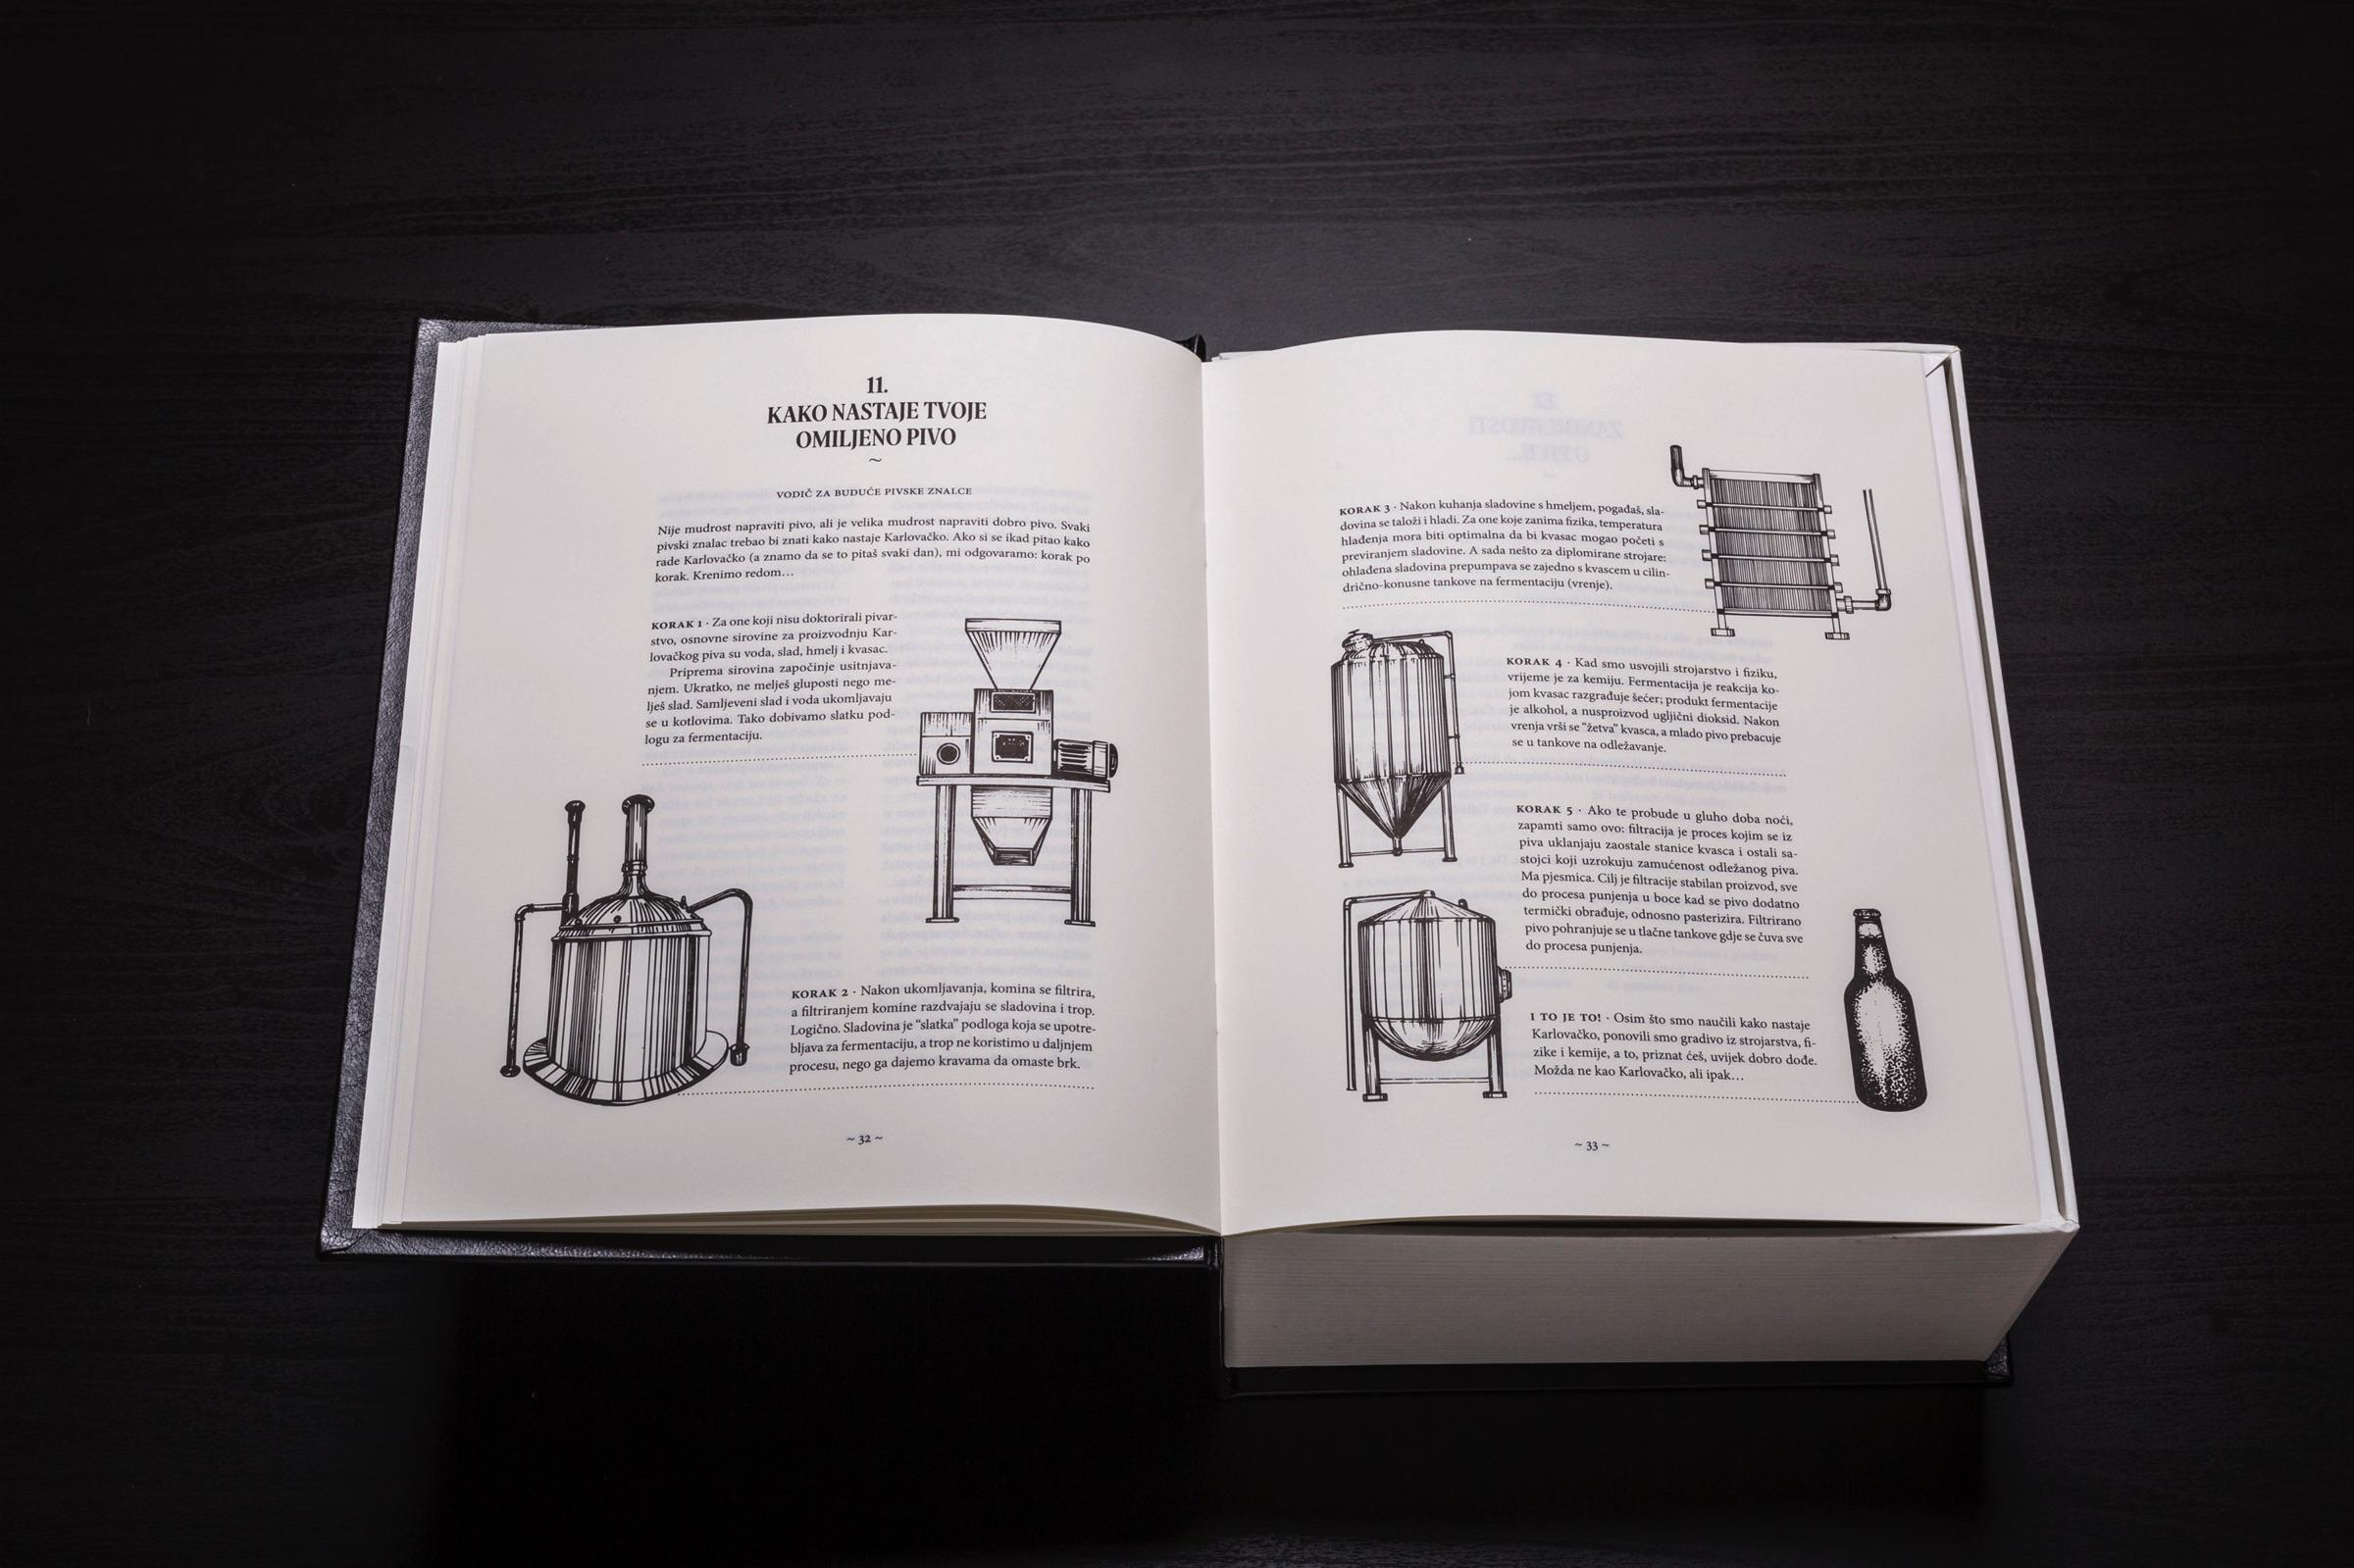 Karlovacko Pivo Direct Ad - The Beer Connoisseurs' Glossary